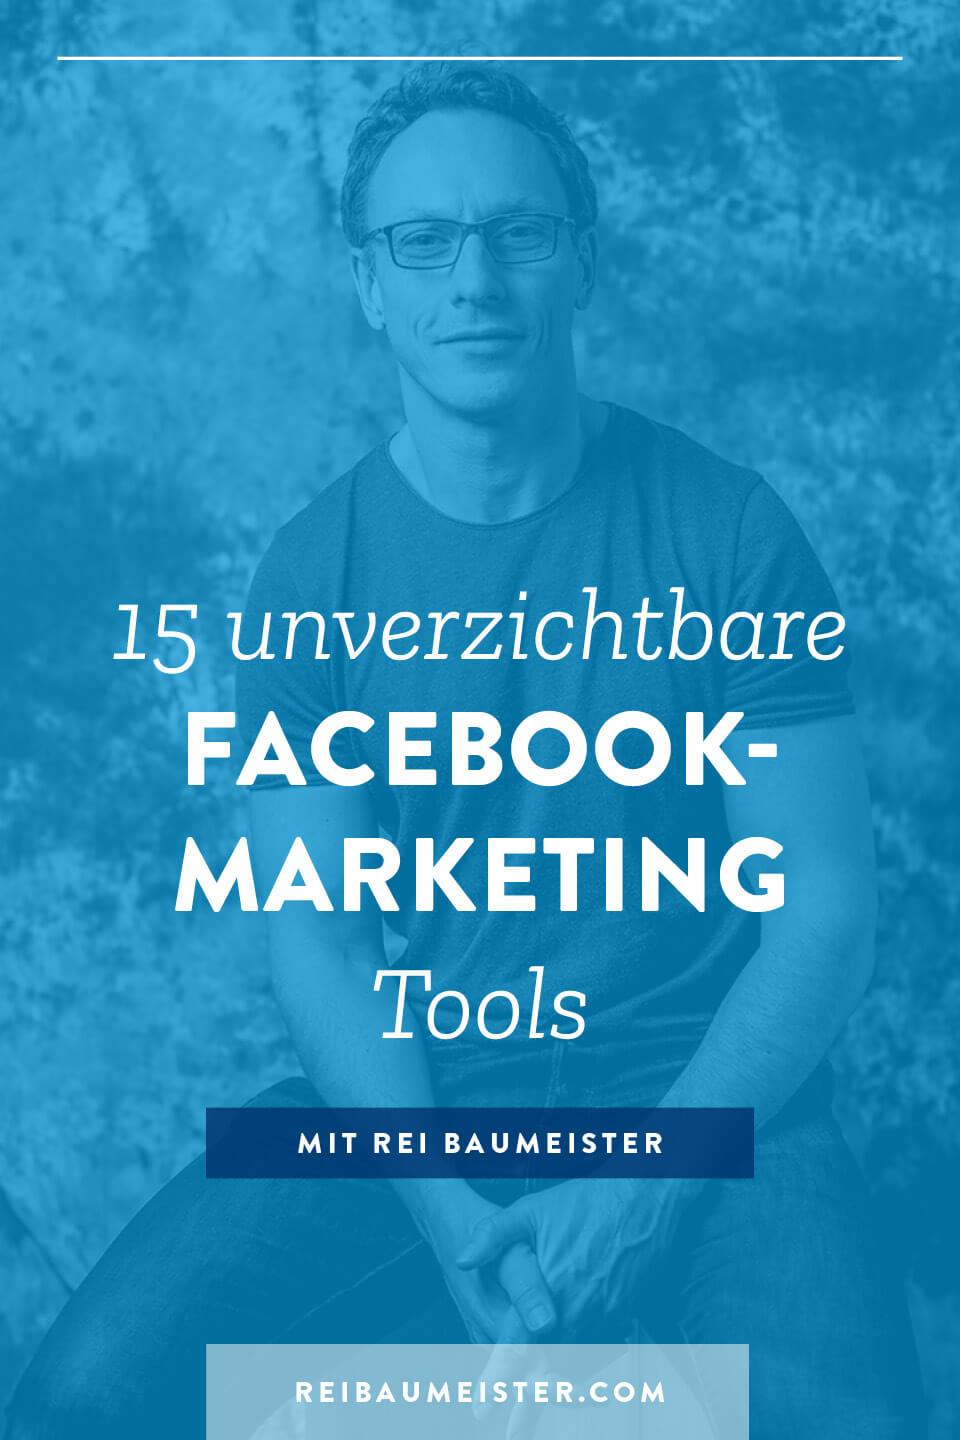 15 unverzichtbare Facebook-Marketing Tools